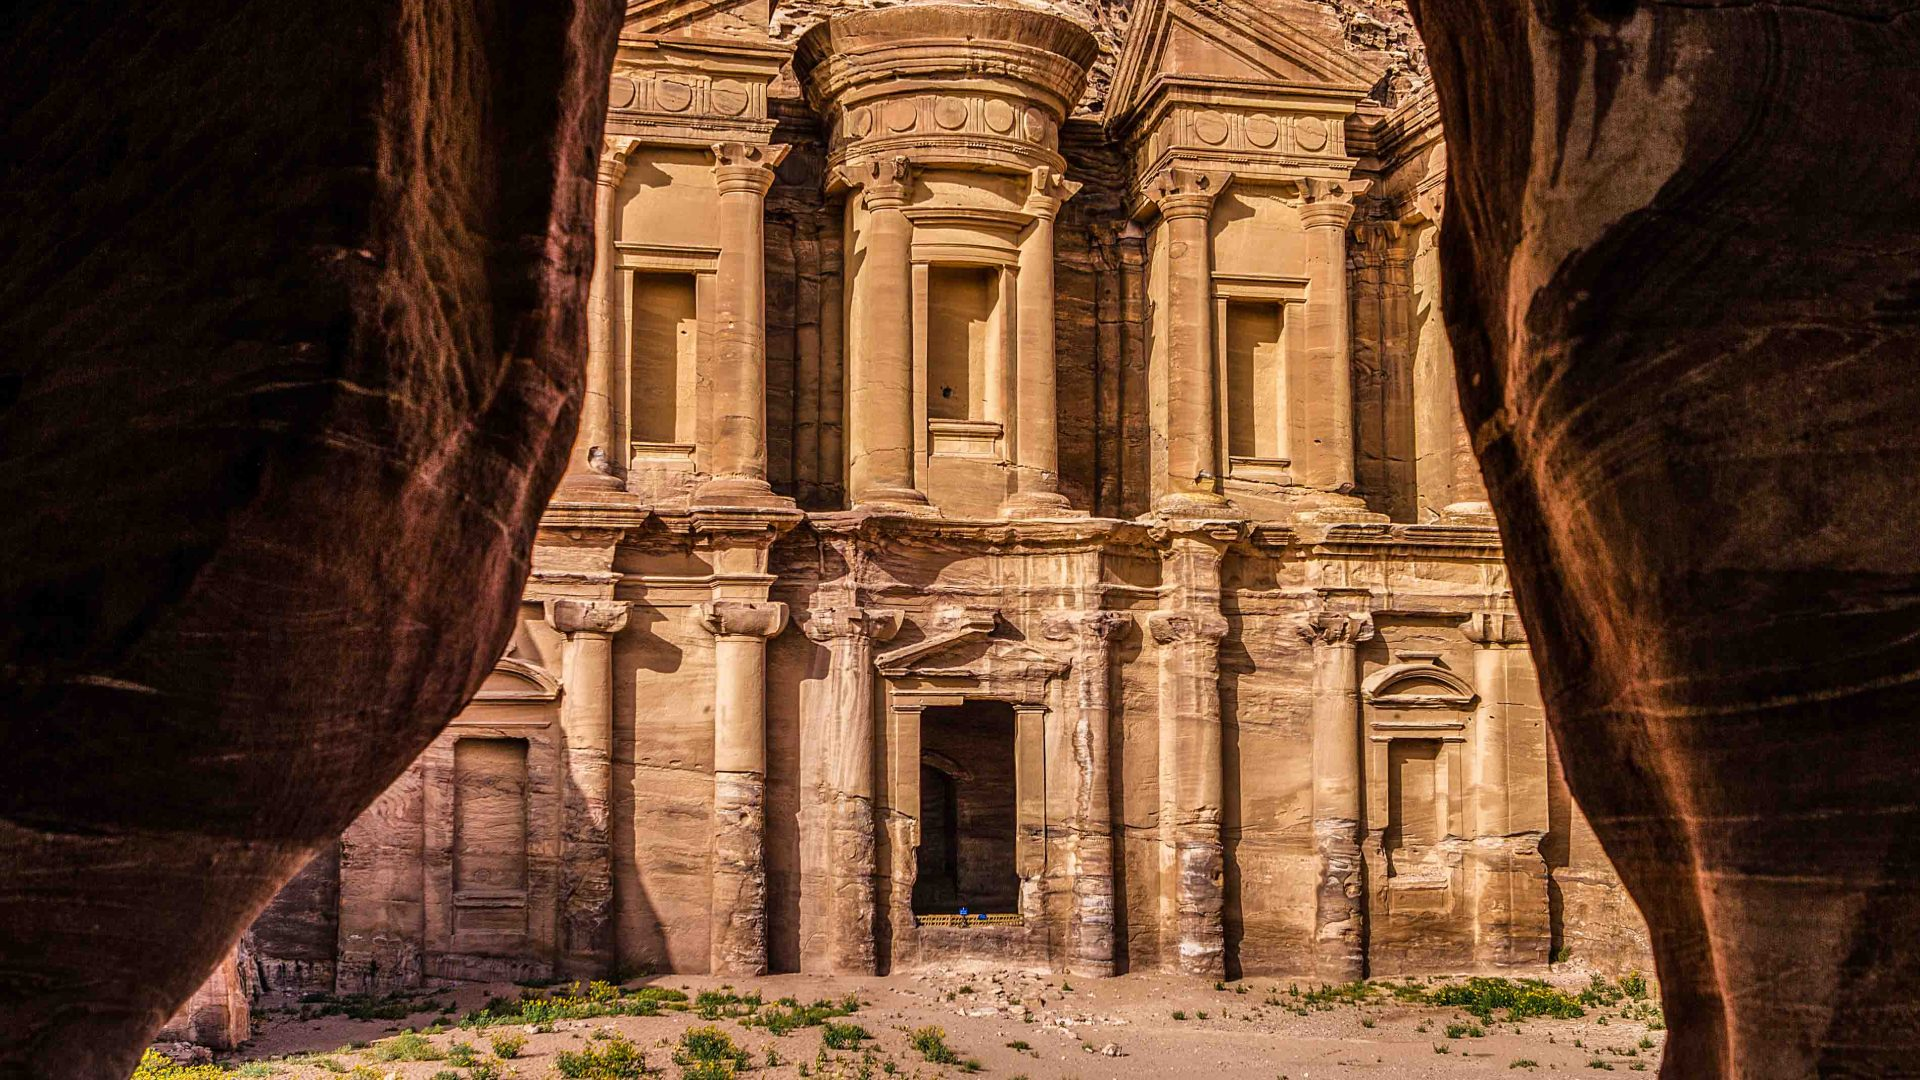 The remains at Petra stand tall, one of the many highlights of the Jordan Trail.